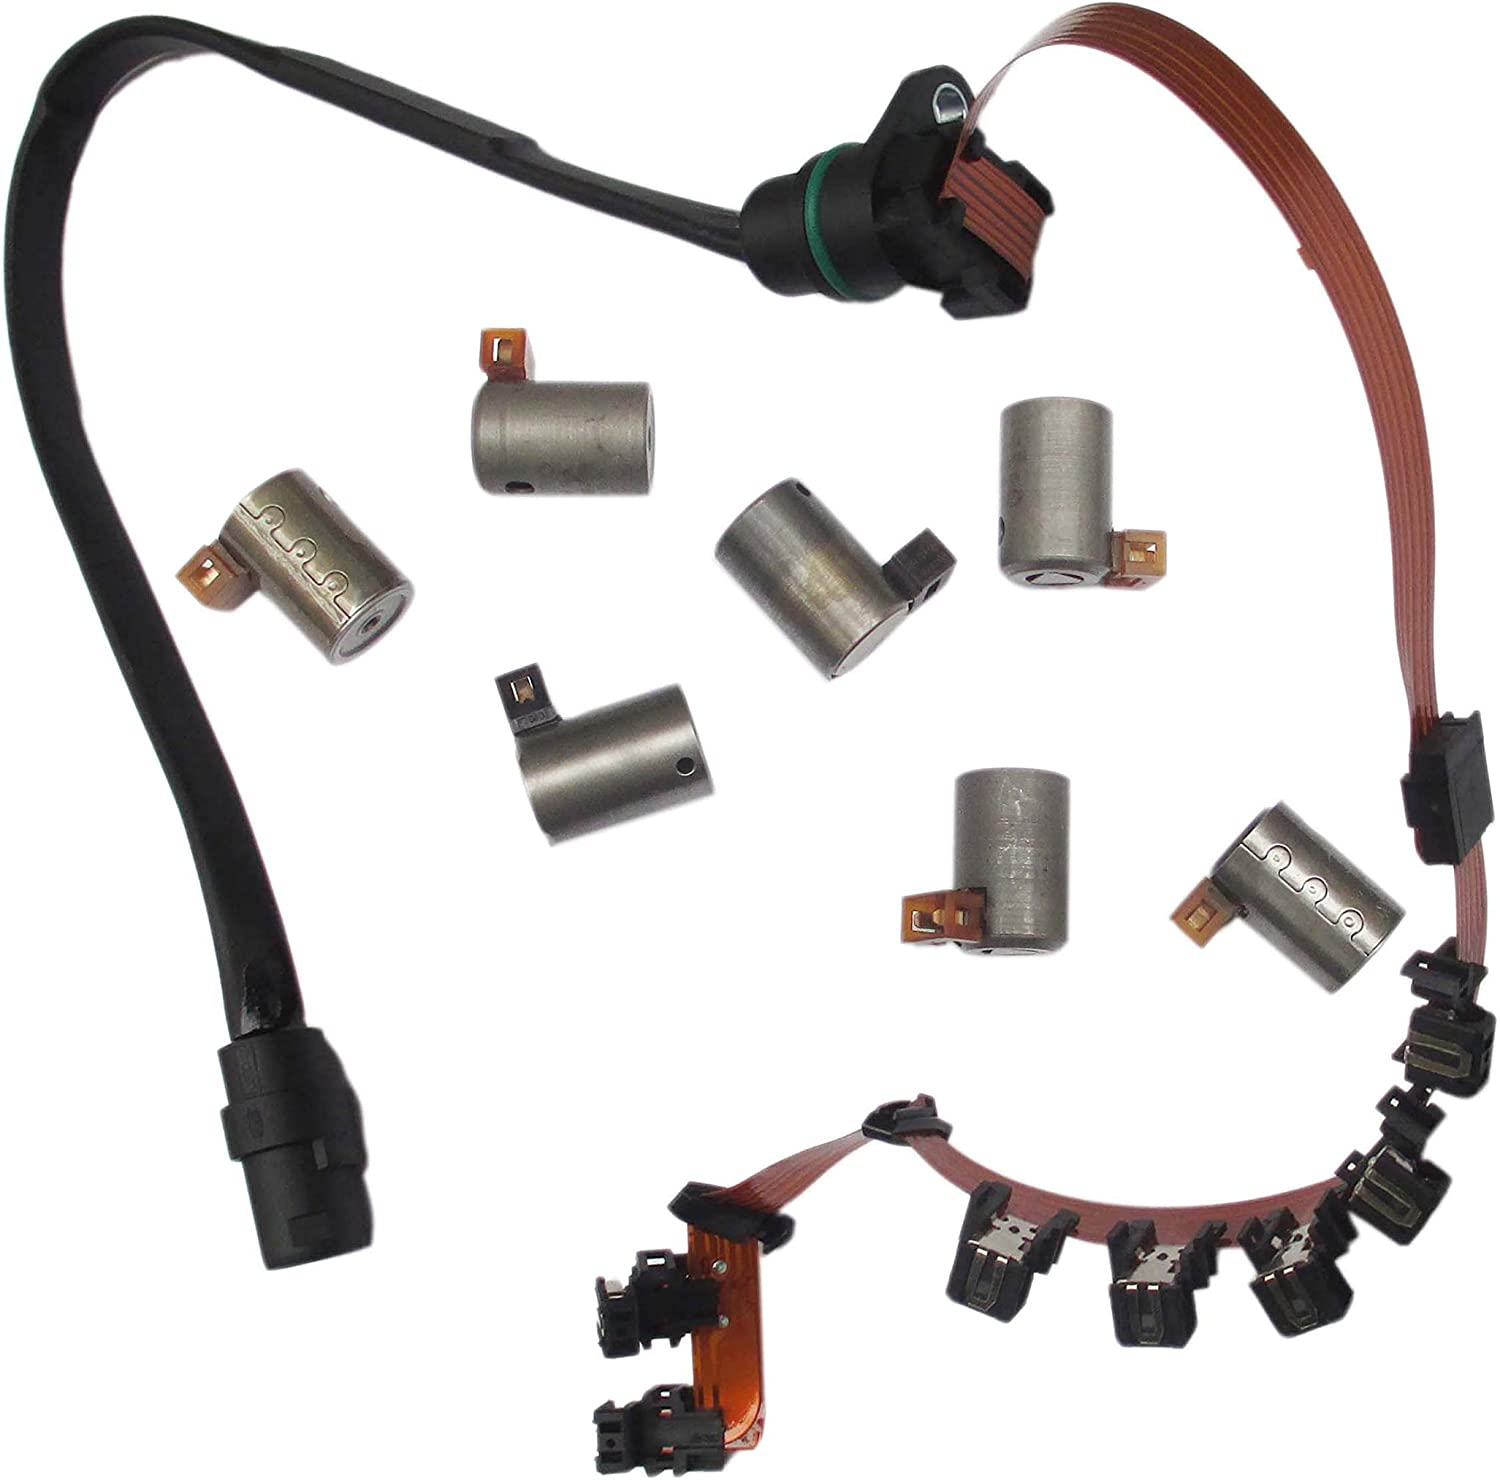 7x Transmission Master Solenoid Kit Wire FOR Harness VW JETTA 95-04 01M O1M